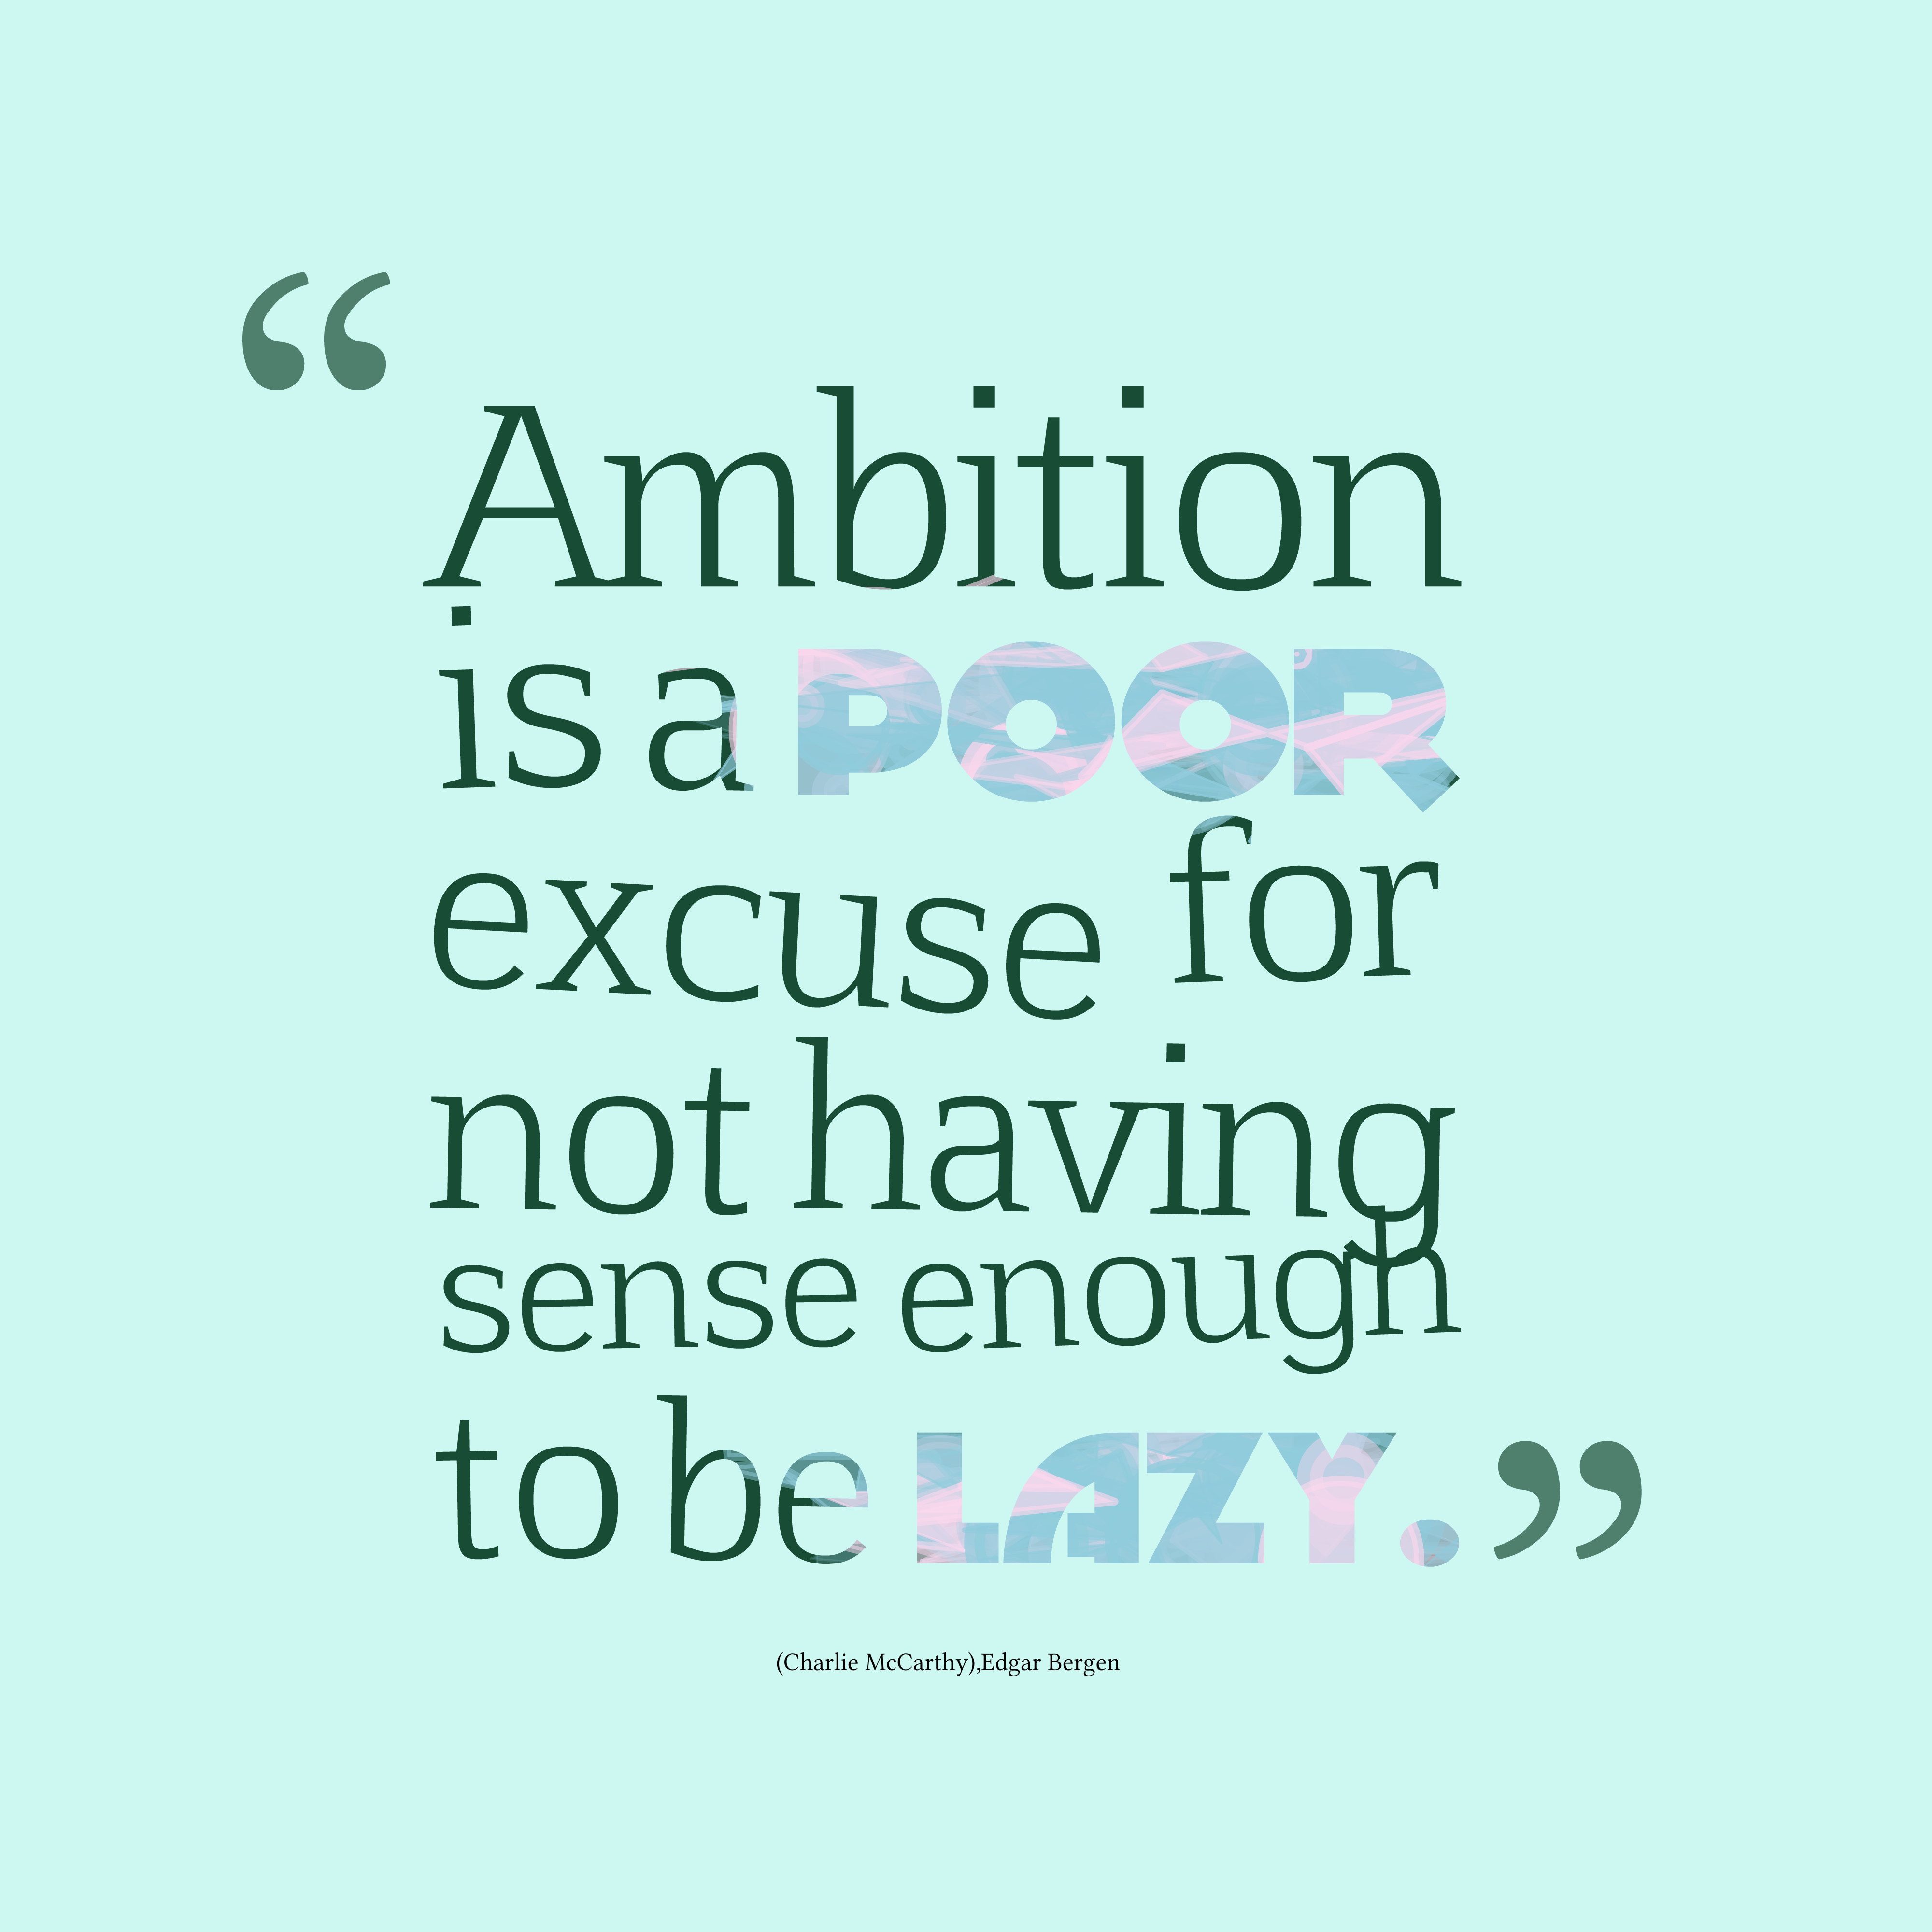 Ambition is a poor excuse for not having sense enough to be lazy. Milan Kundera